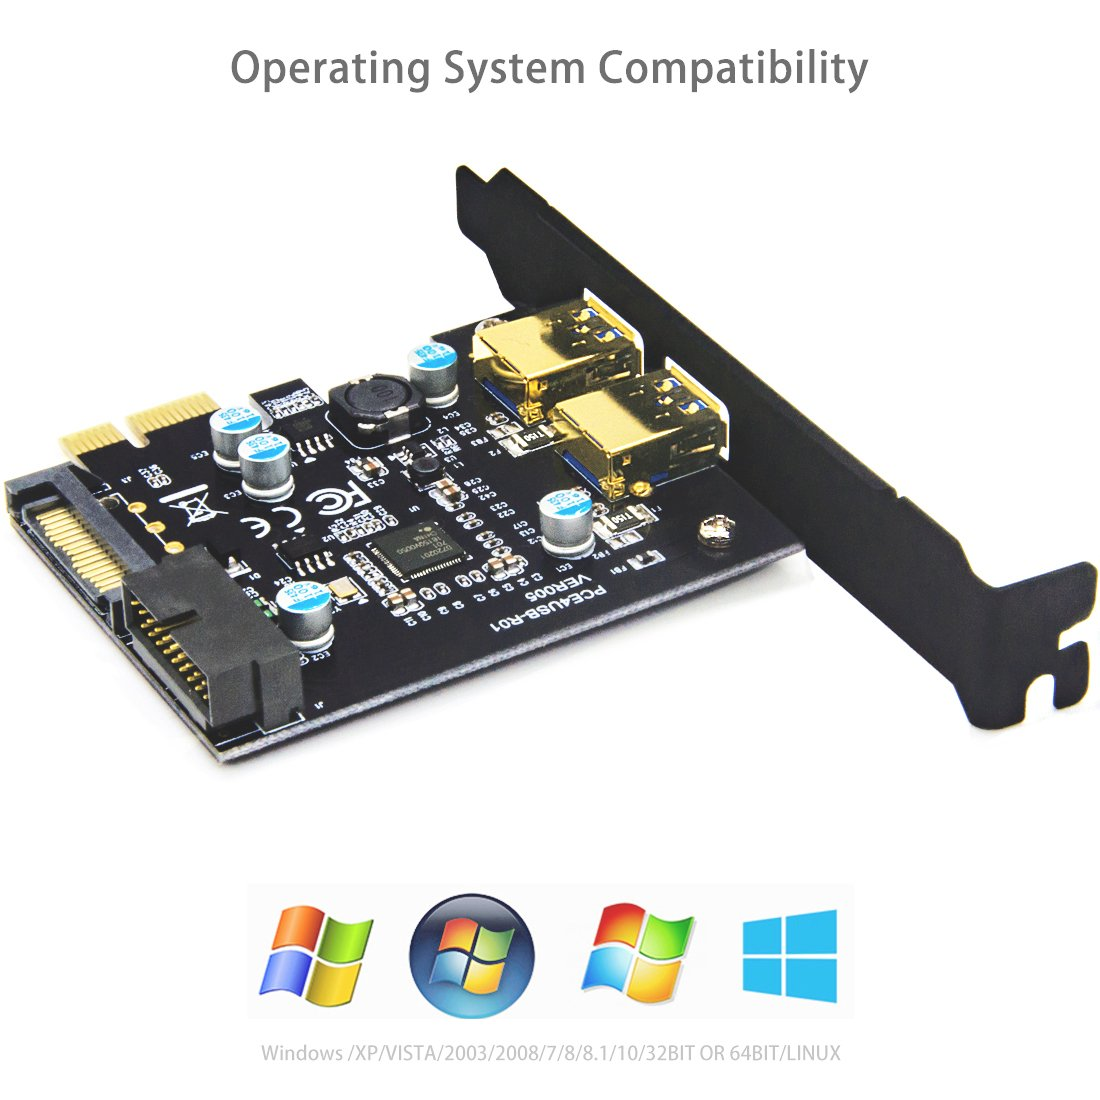 Mailiya PCI-E to USB 3.0 2-Port PCI Express Card,Mini PCI-E USB 3.0 Hub Controller Adapter 15-Pin Power Connector 1 USB 3.0 20-Pin Connector - Expand Another Two USB 3.0 Ports by Mailiya (Image #4)